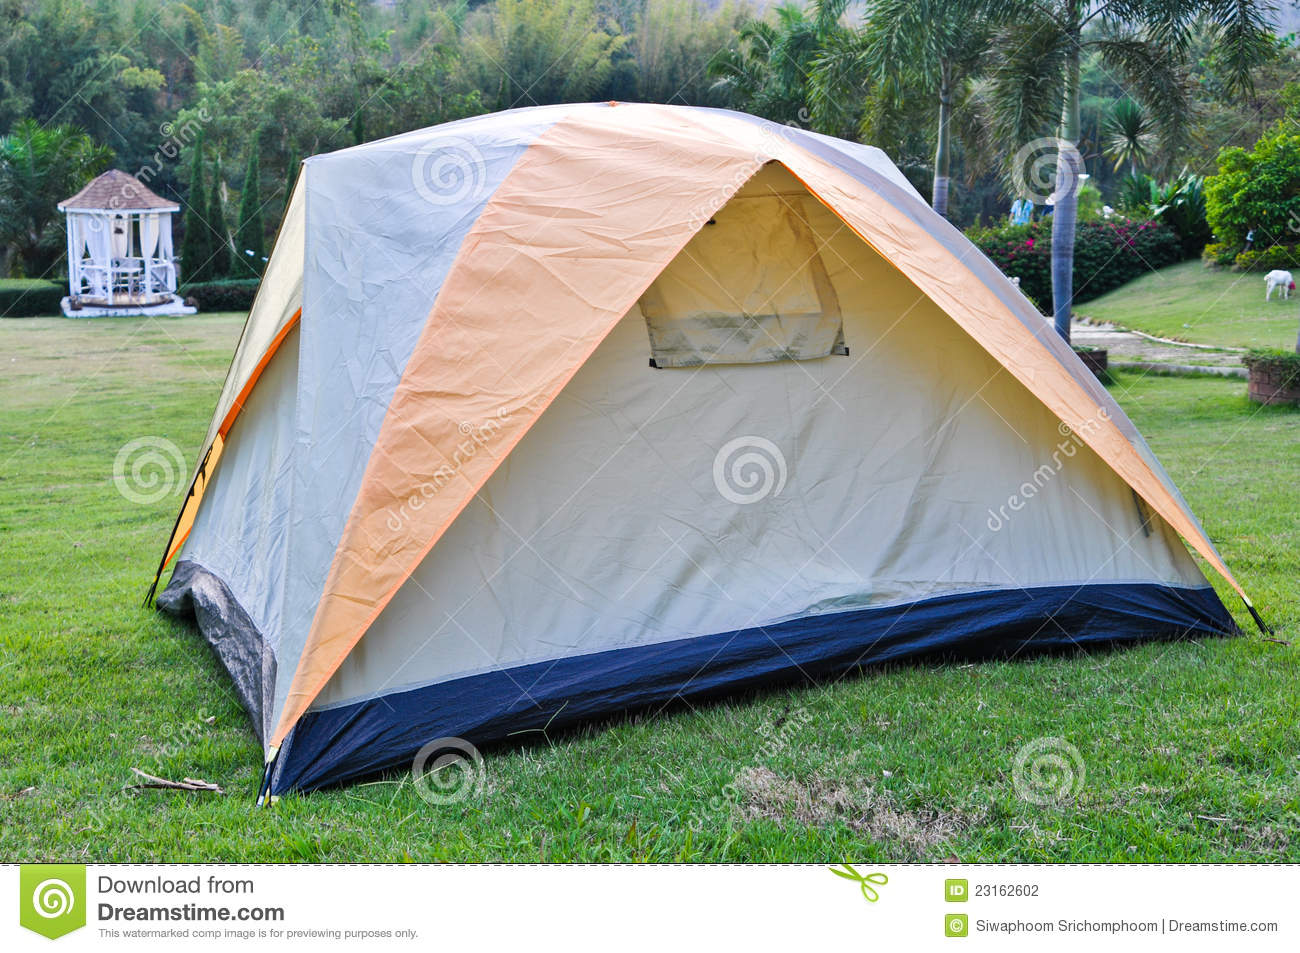 Tent on lawn stock photo  Image of camping, shop, protection